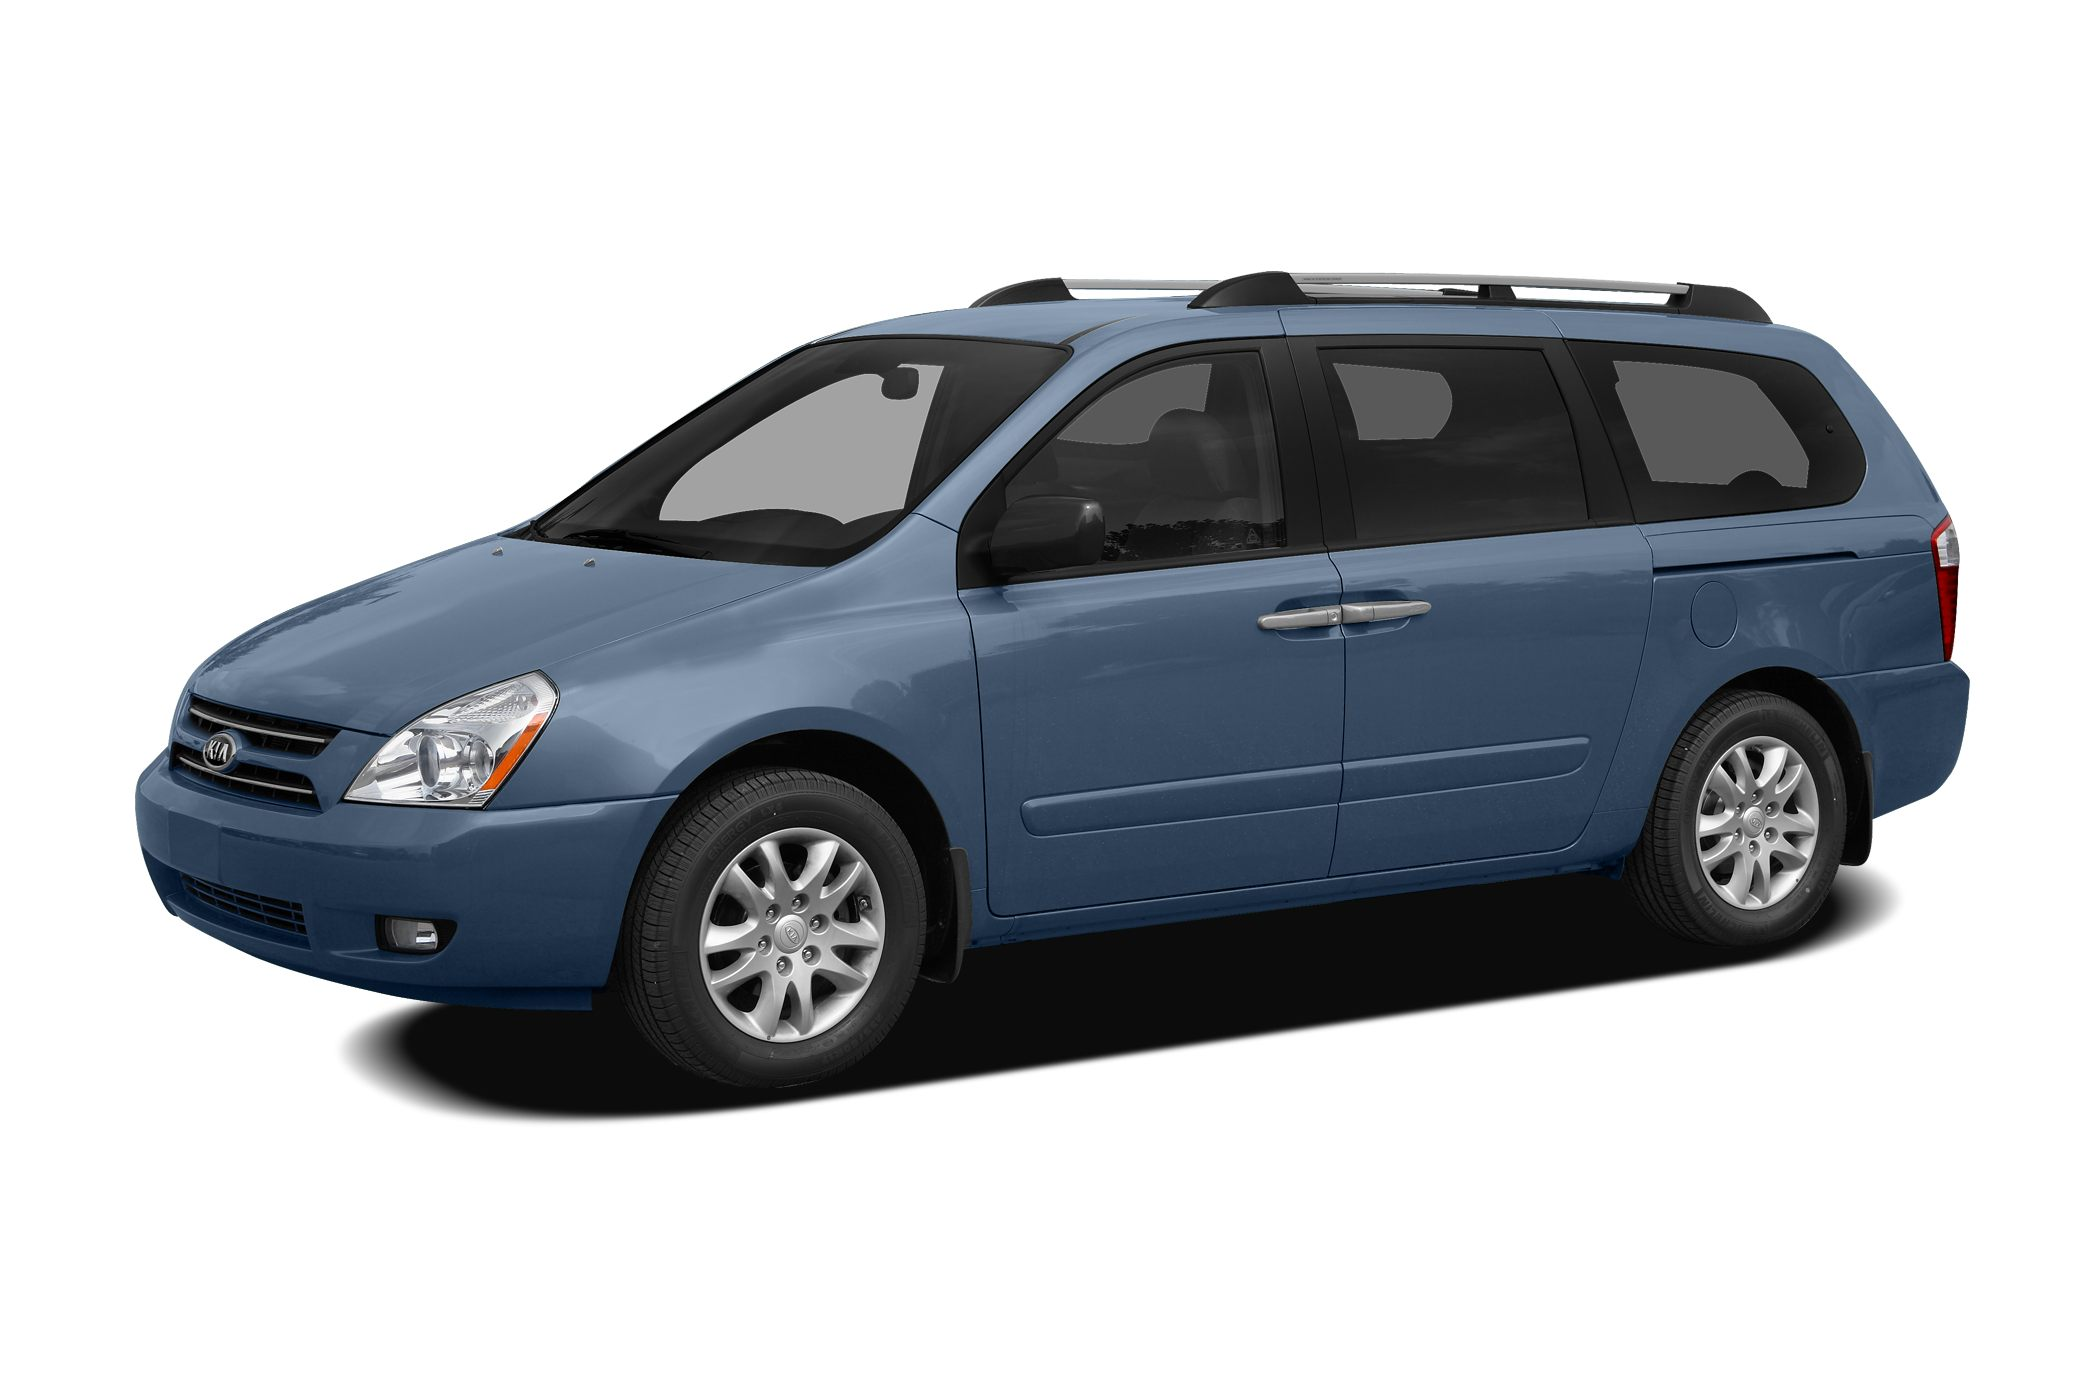 2007 Kia Sedona LX At Advantage Chrysler you know you are getting a safe and dependable vehicle E